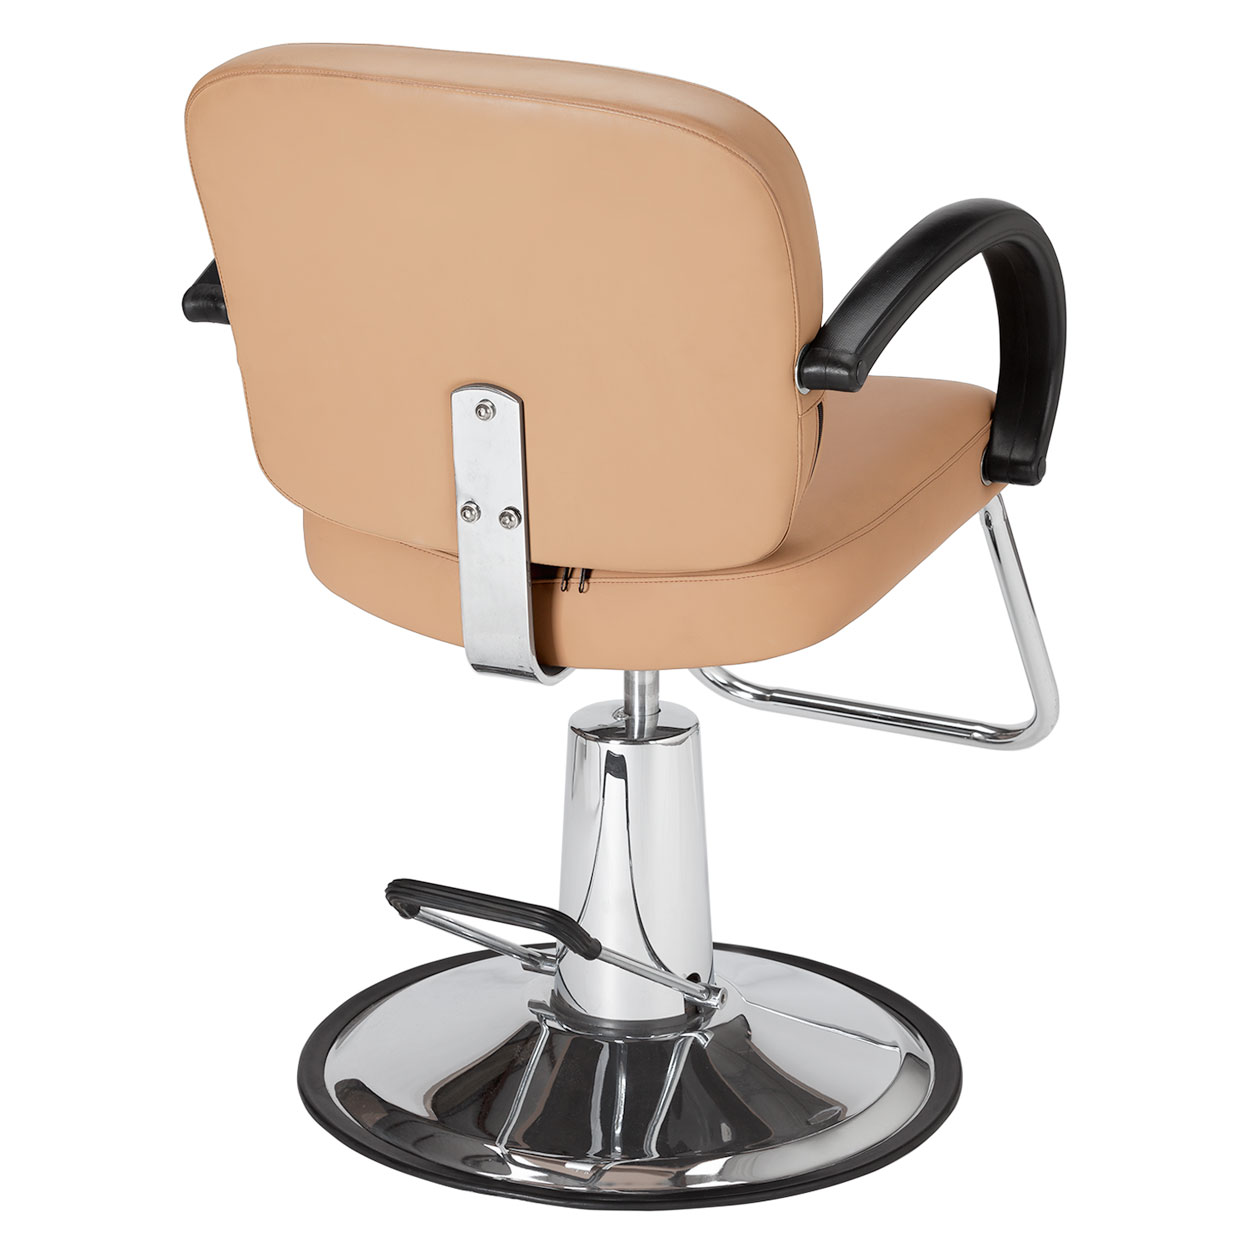 Pibbs 3606 Messina Styling Chair alternative product image 3